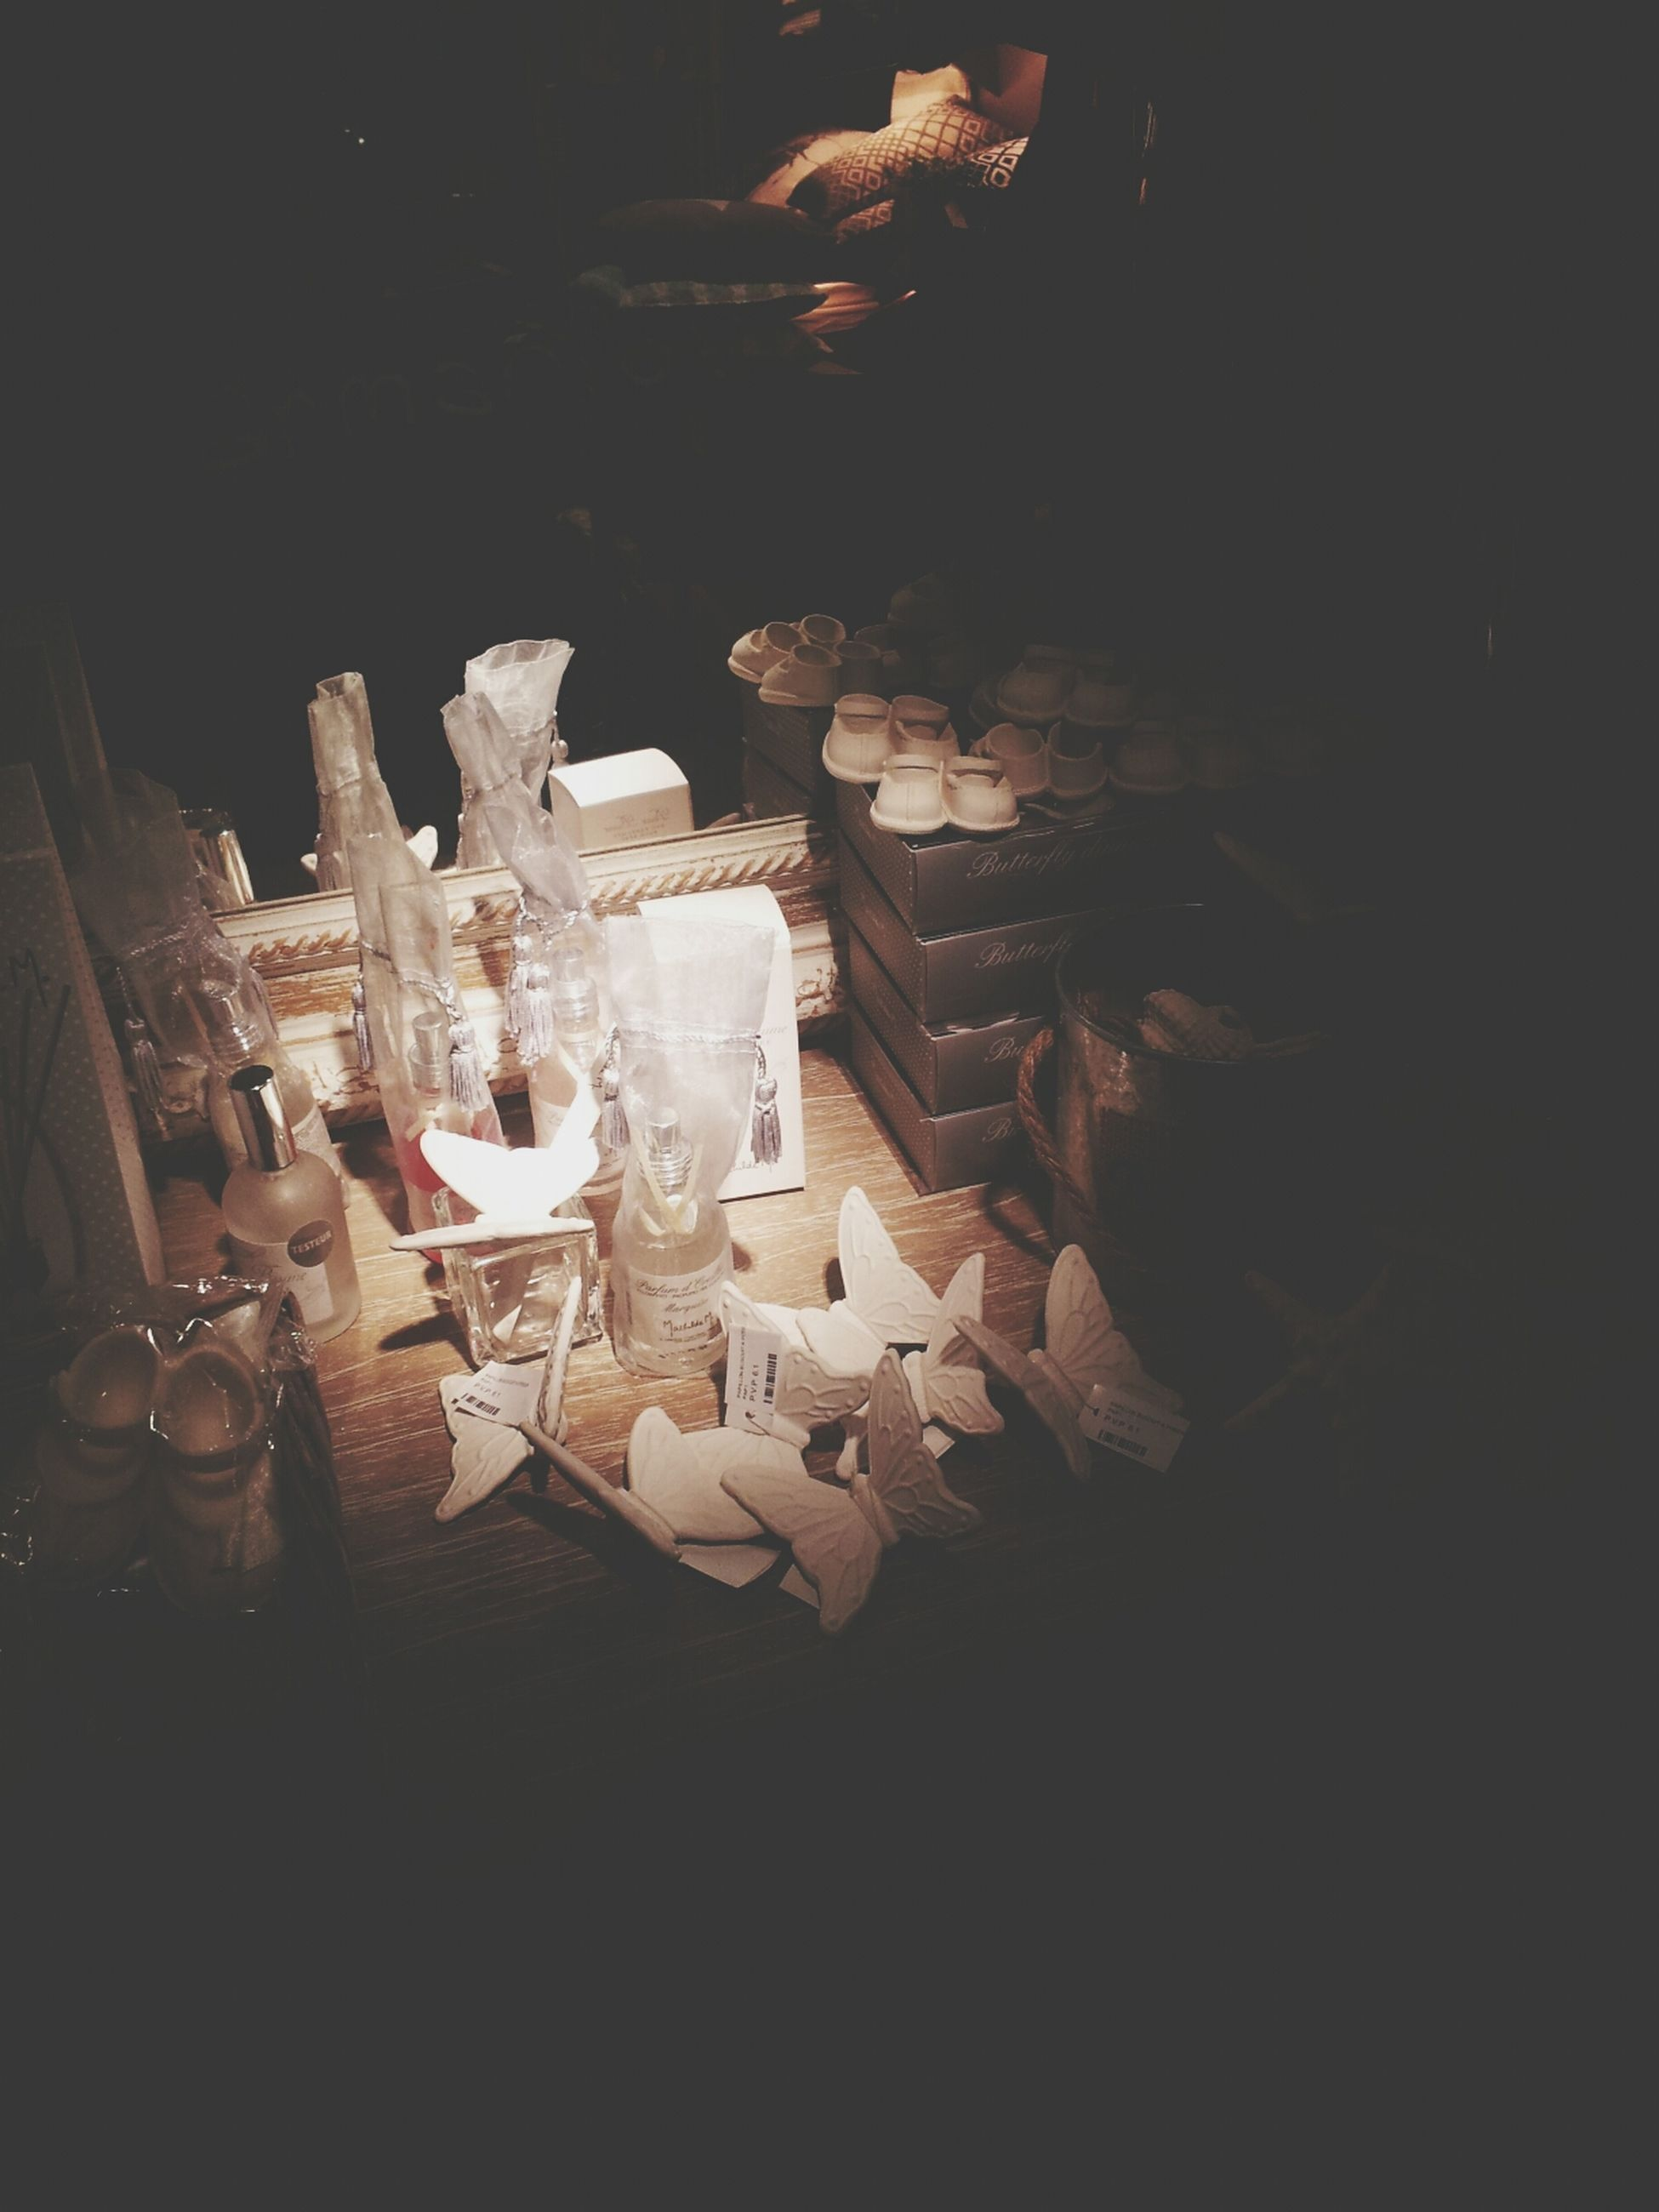 indoors, table, still life, candle, dark, high angle view, burning, night, flame, no people, illuminated, wood - material, arrangement, large group of objects, chair, heat - temperature, fire - natural phenomenon, close-up, home interior, food and drink